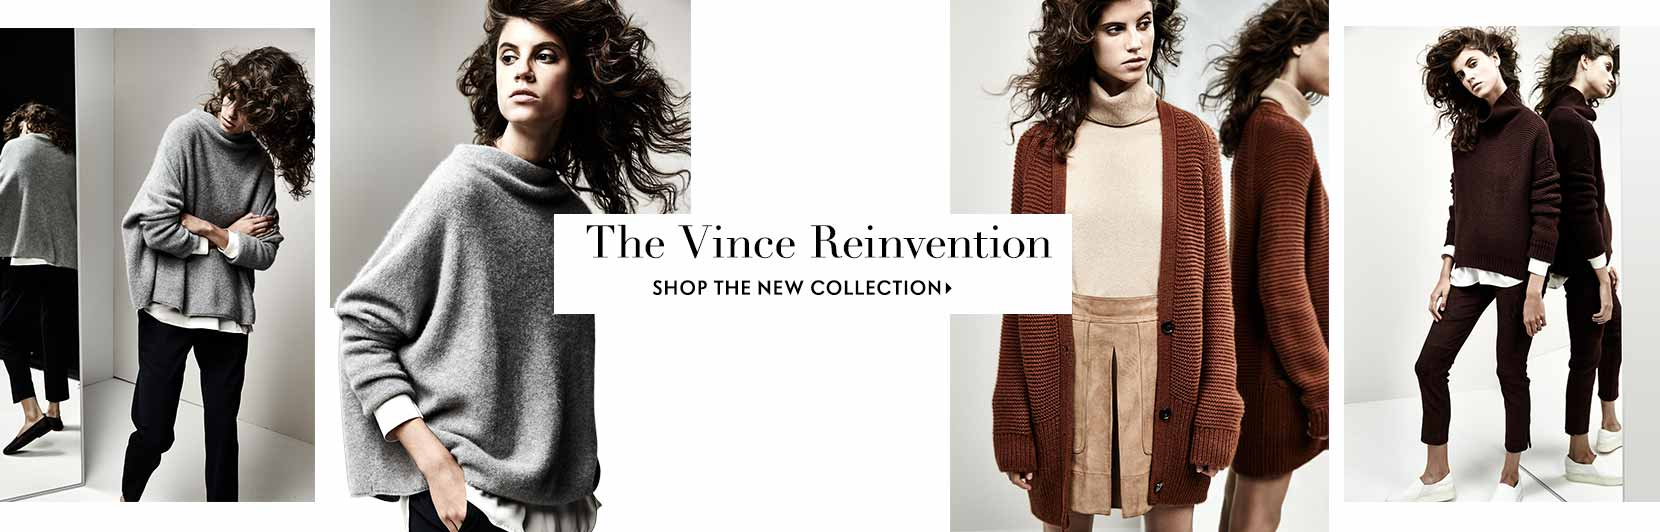 The Vince Reinvention shop the new collection